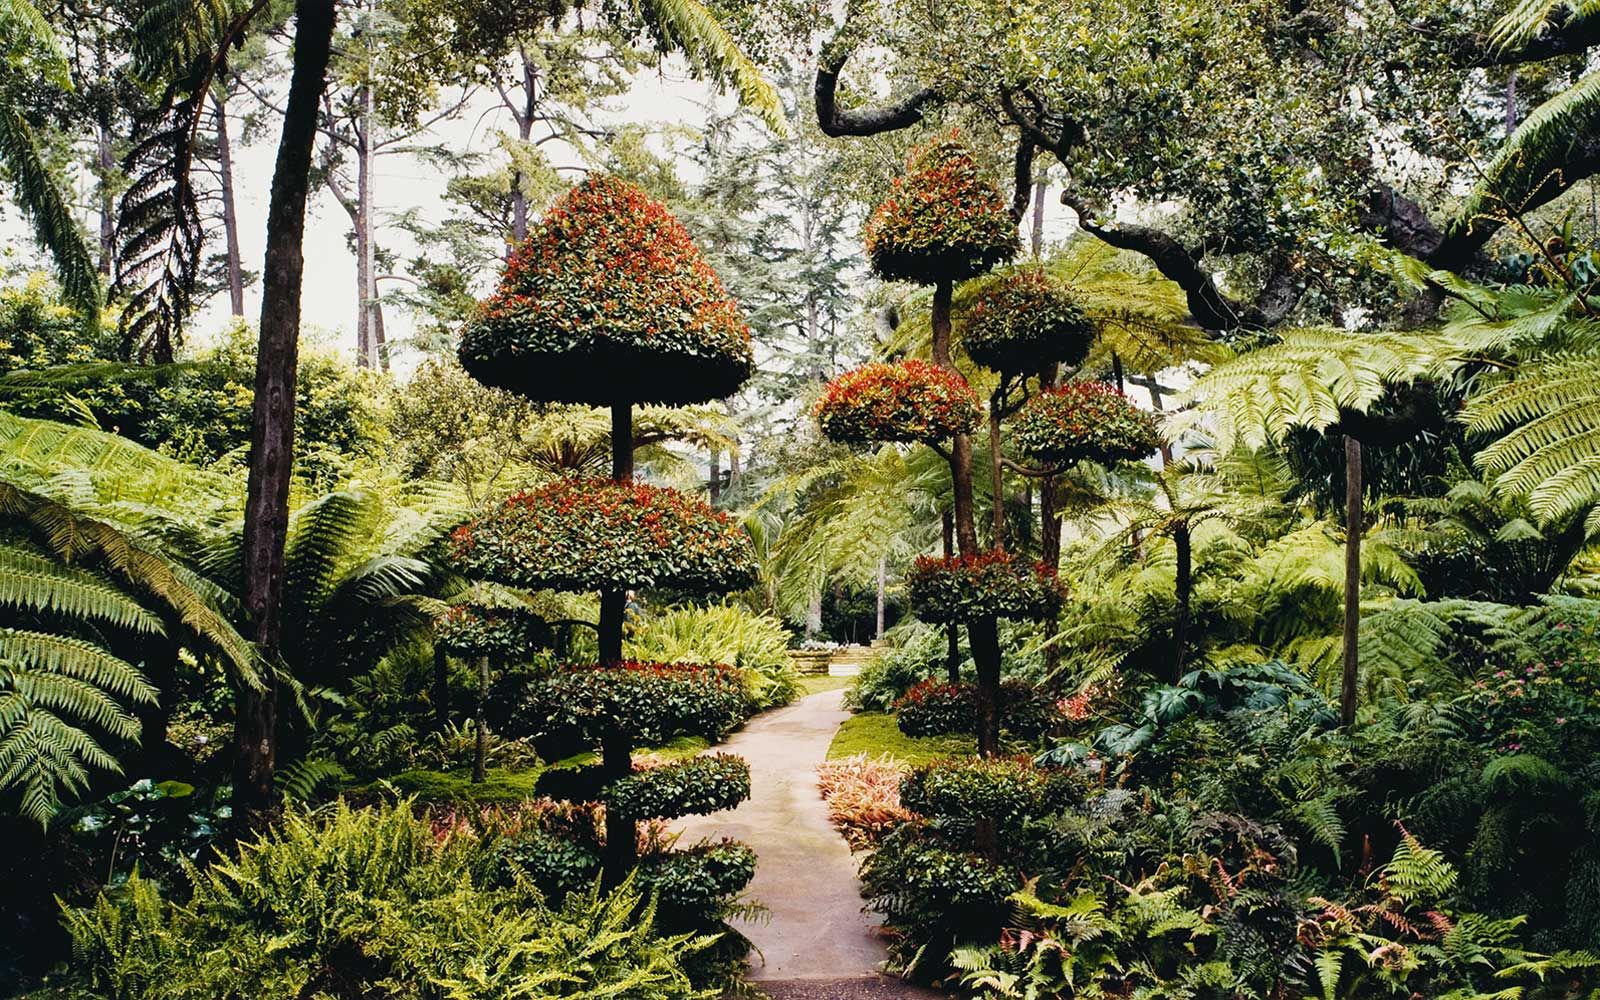 These 10 Photographs of Gorgeous Gardens Around the World Will Give You a Serious Case of Spring Fever